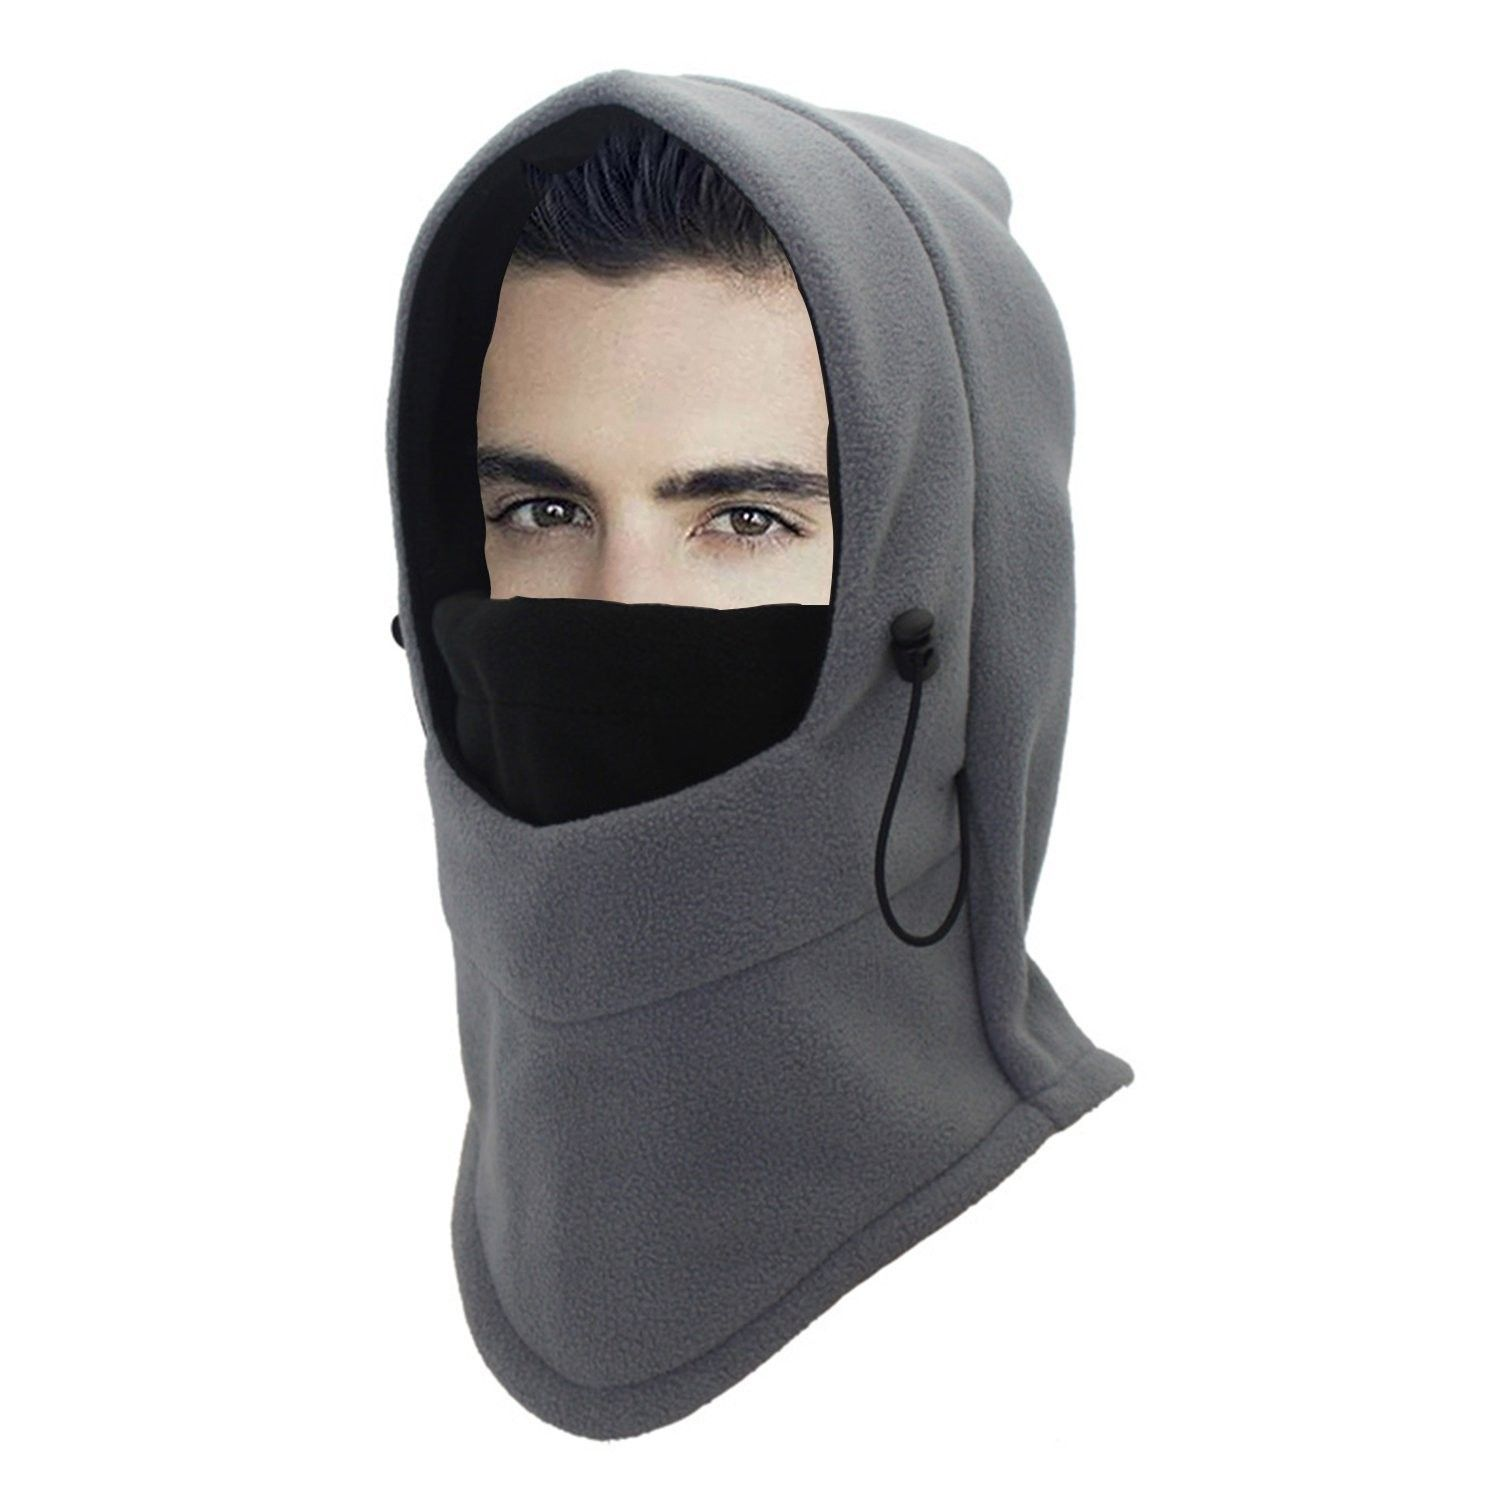 8ef0c37a6936 Heavyweight Balaclava Ski Face Mask Fleece Hood Men Women Kids ...